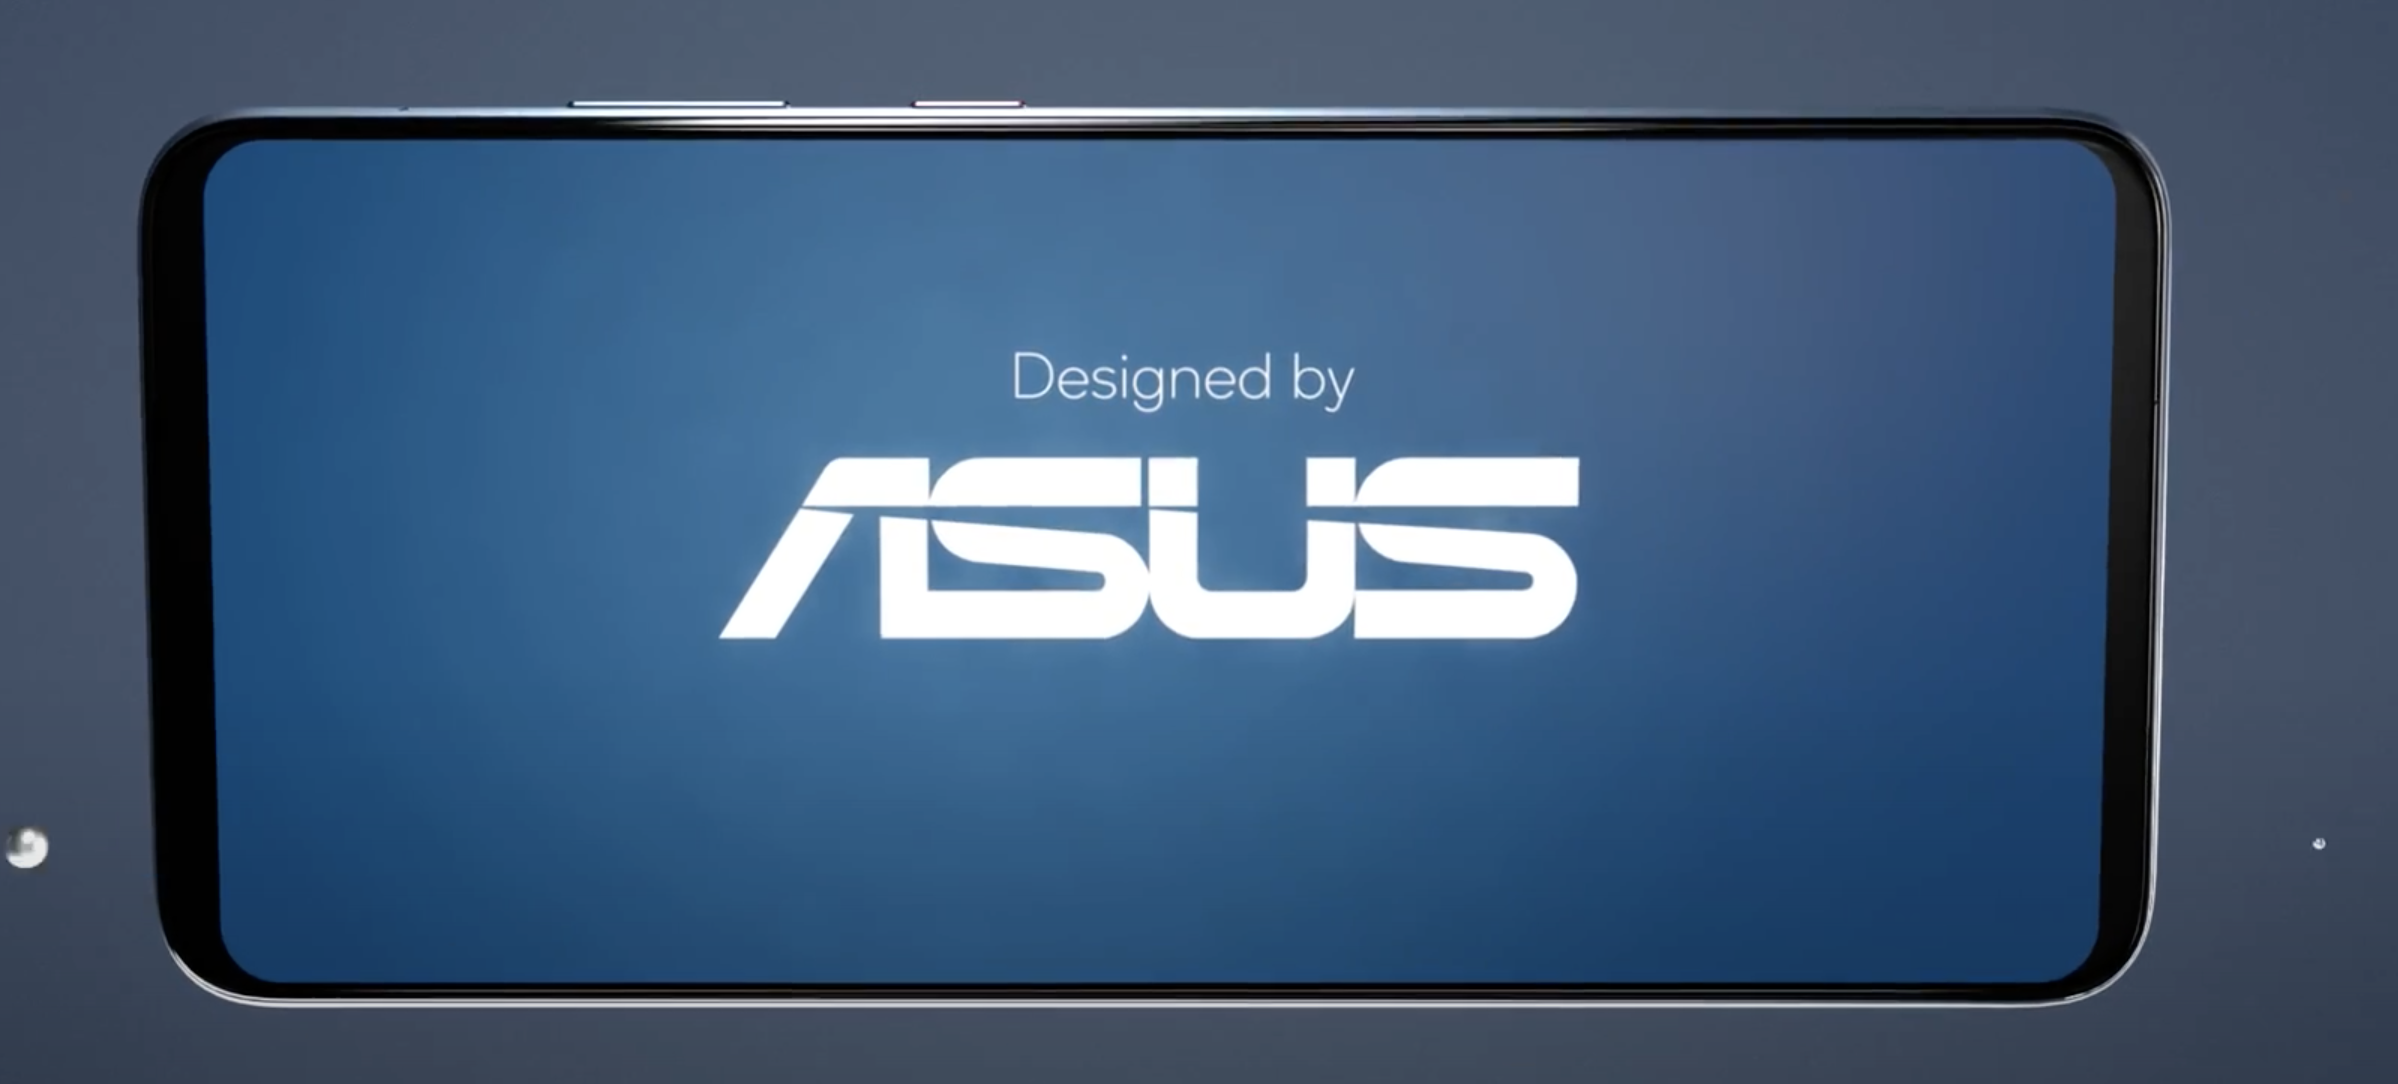 Snapdragon Insiders are getting a new Qualcomm and Asus phone